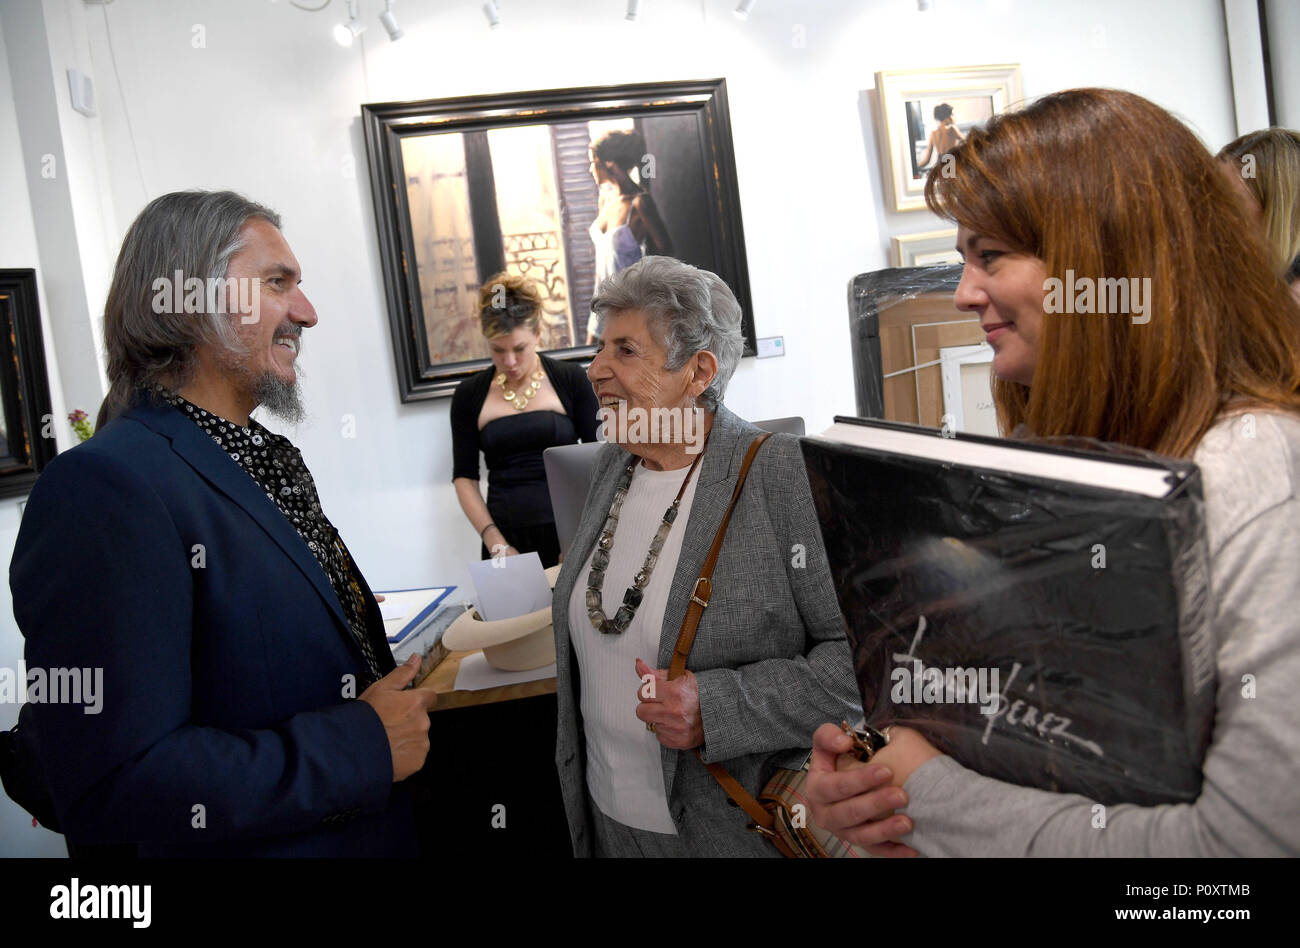 Leading figurative artist Fabian Perez during his countrywide tour unveiling his new collection of paintings Credit: Finnbarr Webster/Alamy Live News - Stock Image